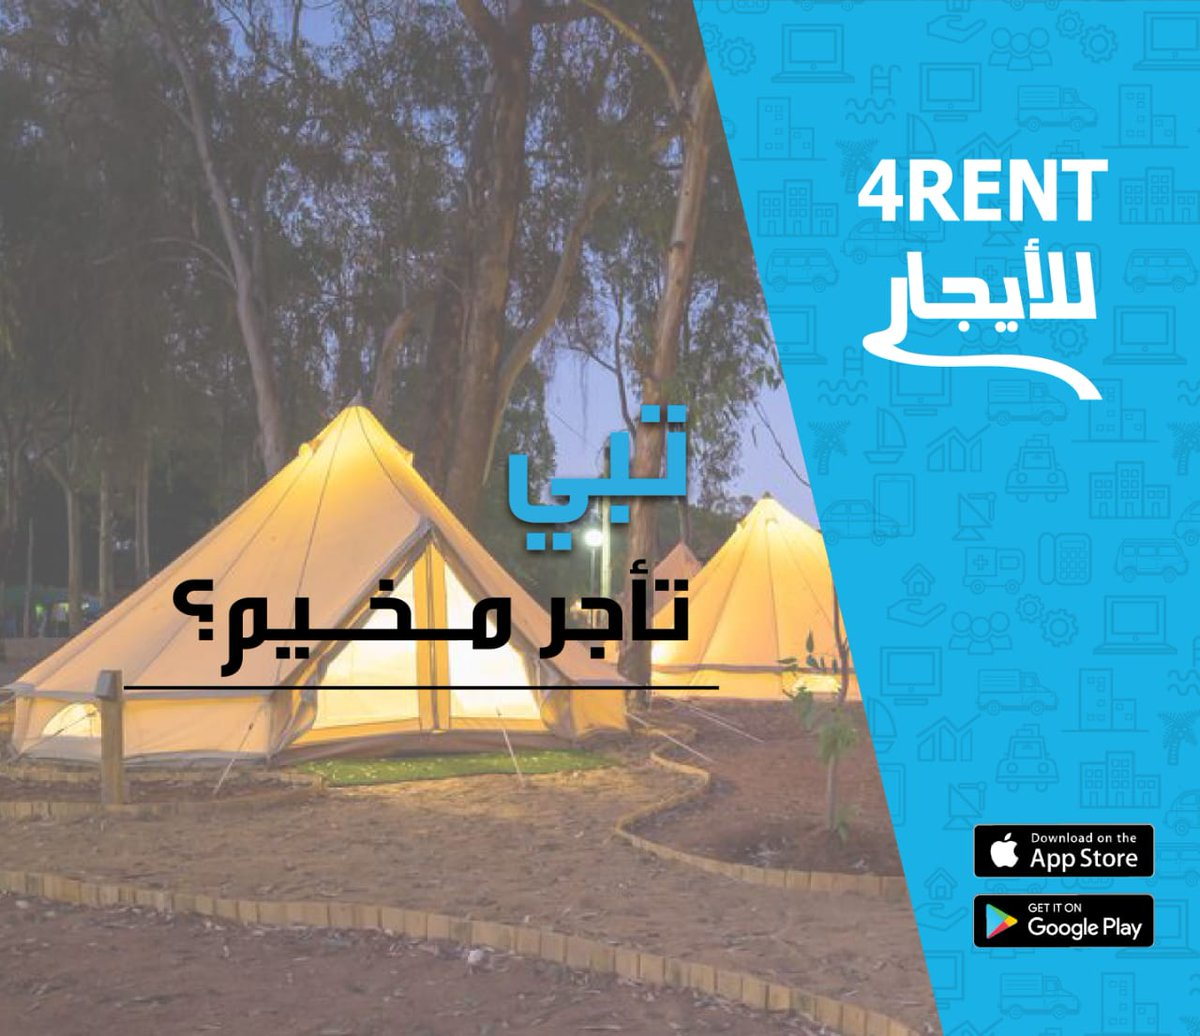 Going camping ...? Rent all your camping needs under one APP ... 4Rent .. where everything is for rent.....App available on Play-store and App-store .. 4rent 4rentApp @4Rent0  #4rent  #camping #desertlife #tents4rent #camps4rent #anything4rent #kuwaitpic.twitter.com/tyK1ipuqnj